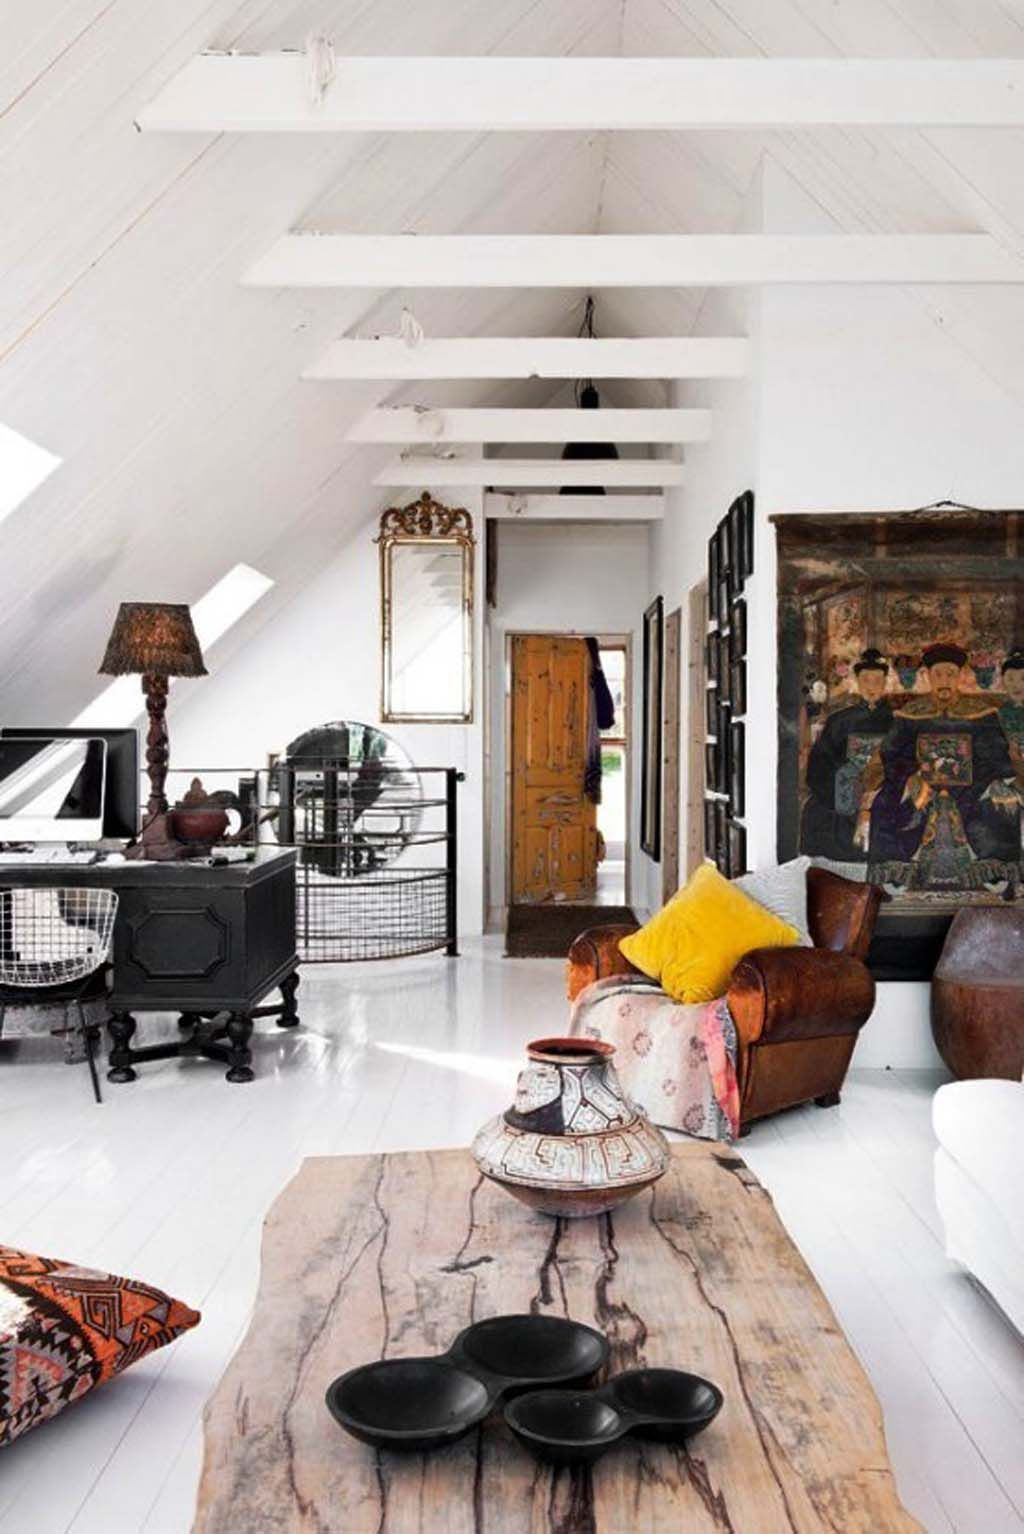 VINTAGE HOMES THAT WILL MAKE YOU WISH TO GO BACK IN TIME | Mix ...